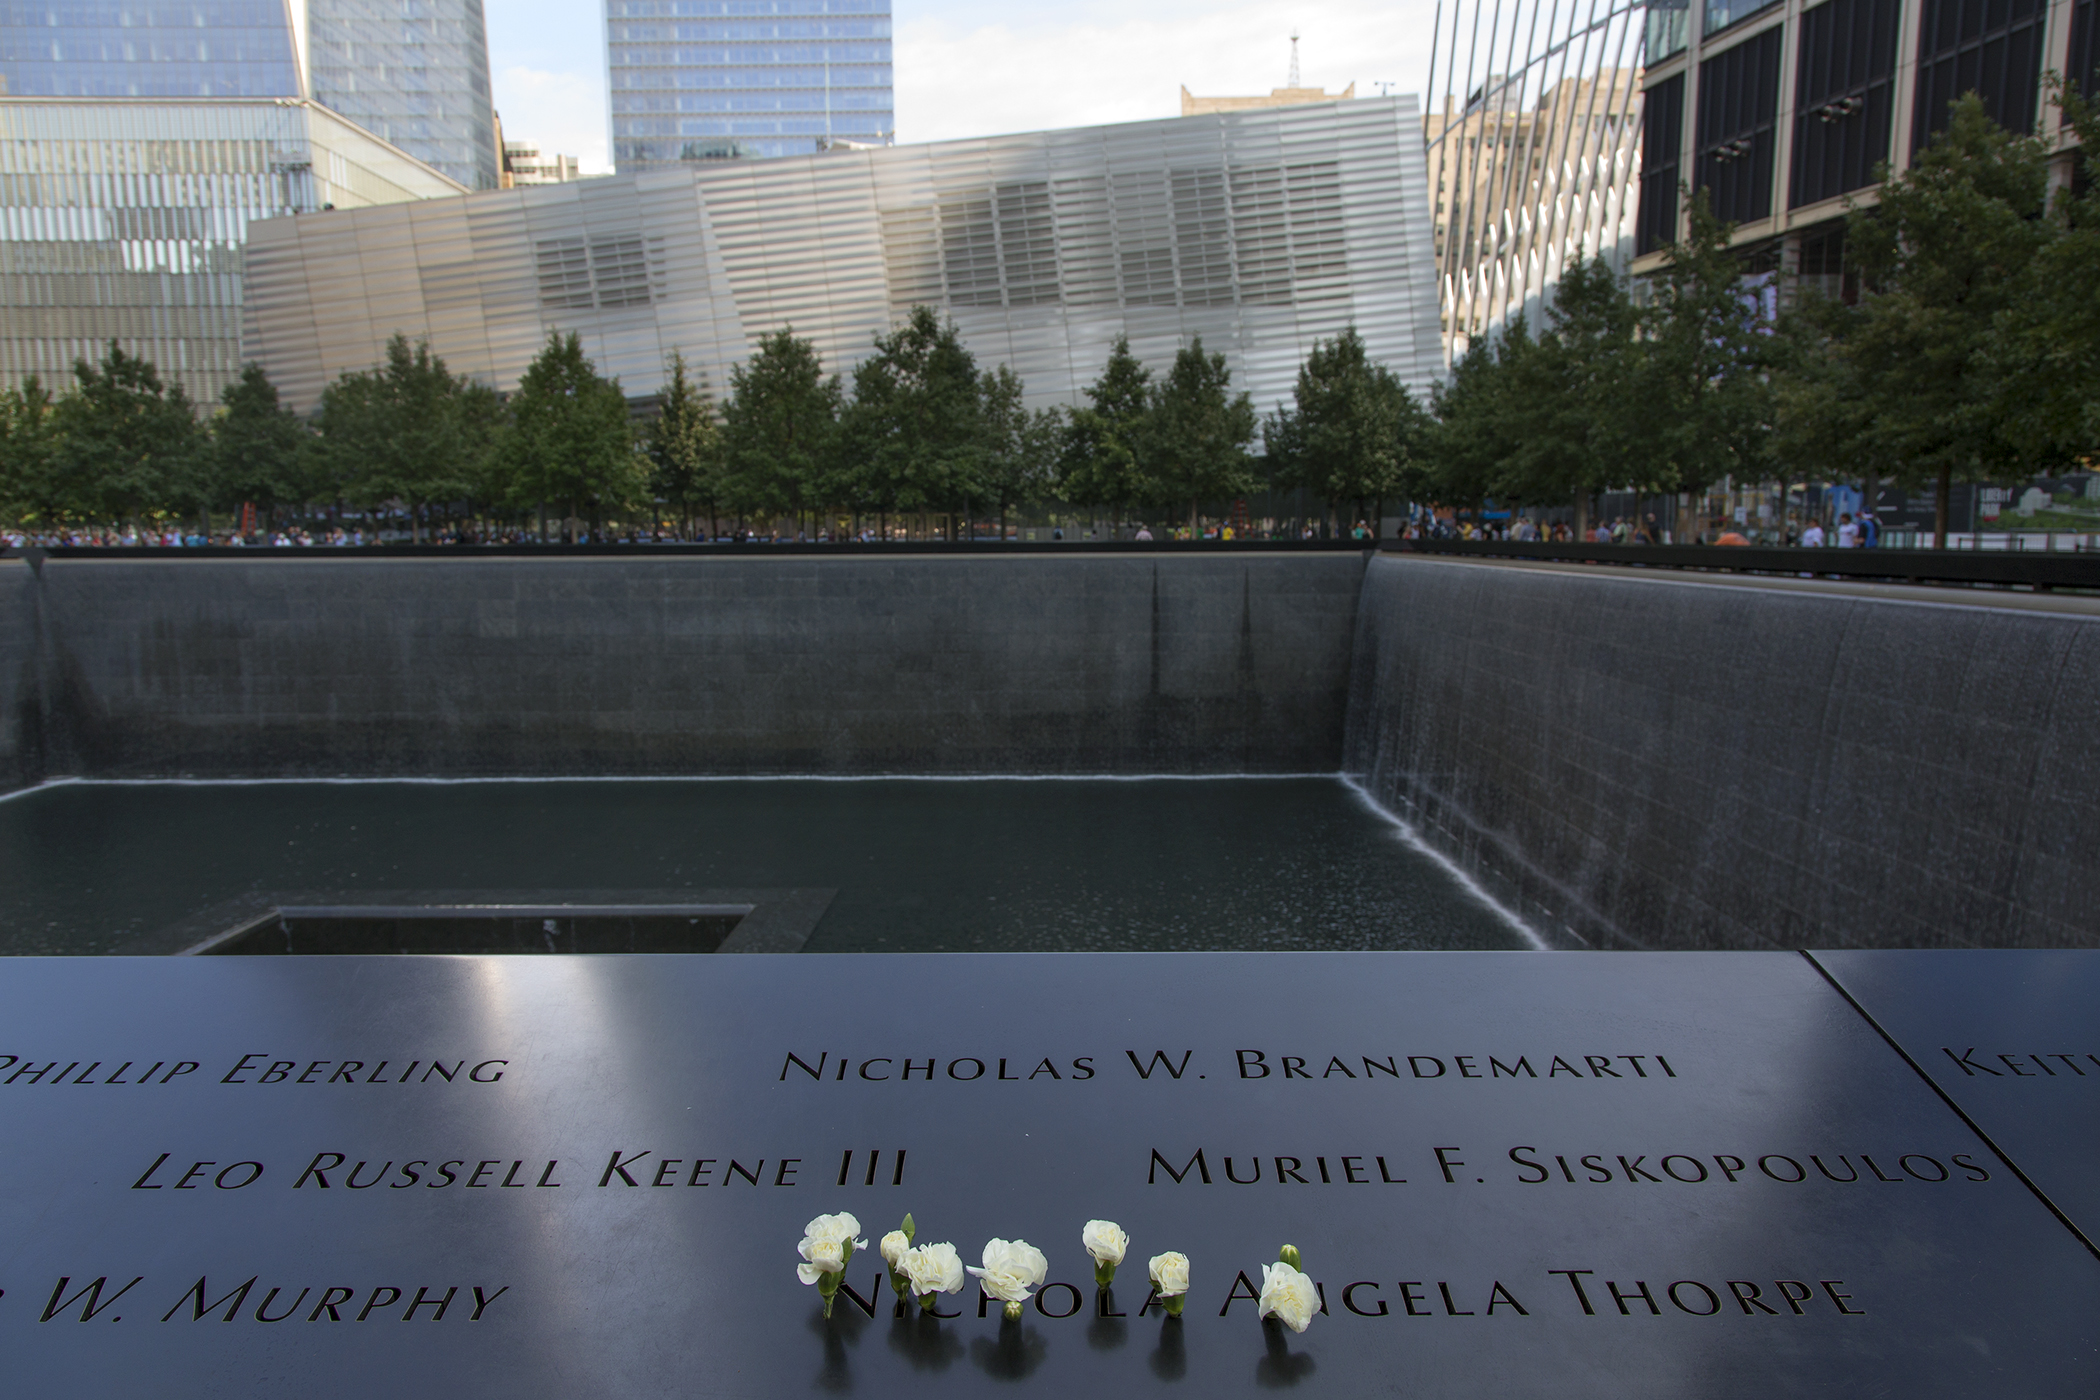 The names of victims of the September 11 terrorist attacks are engraved into the rim of one of the twin black granite reflecting pools at the September 11 Memorial and Museum, New York.